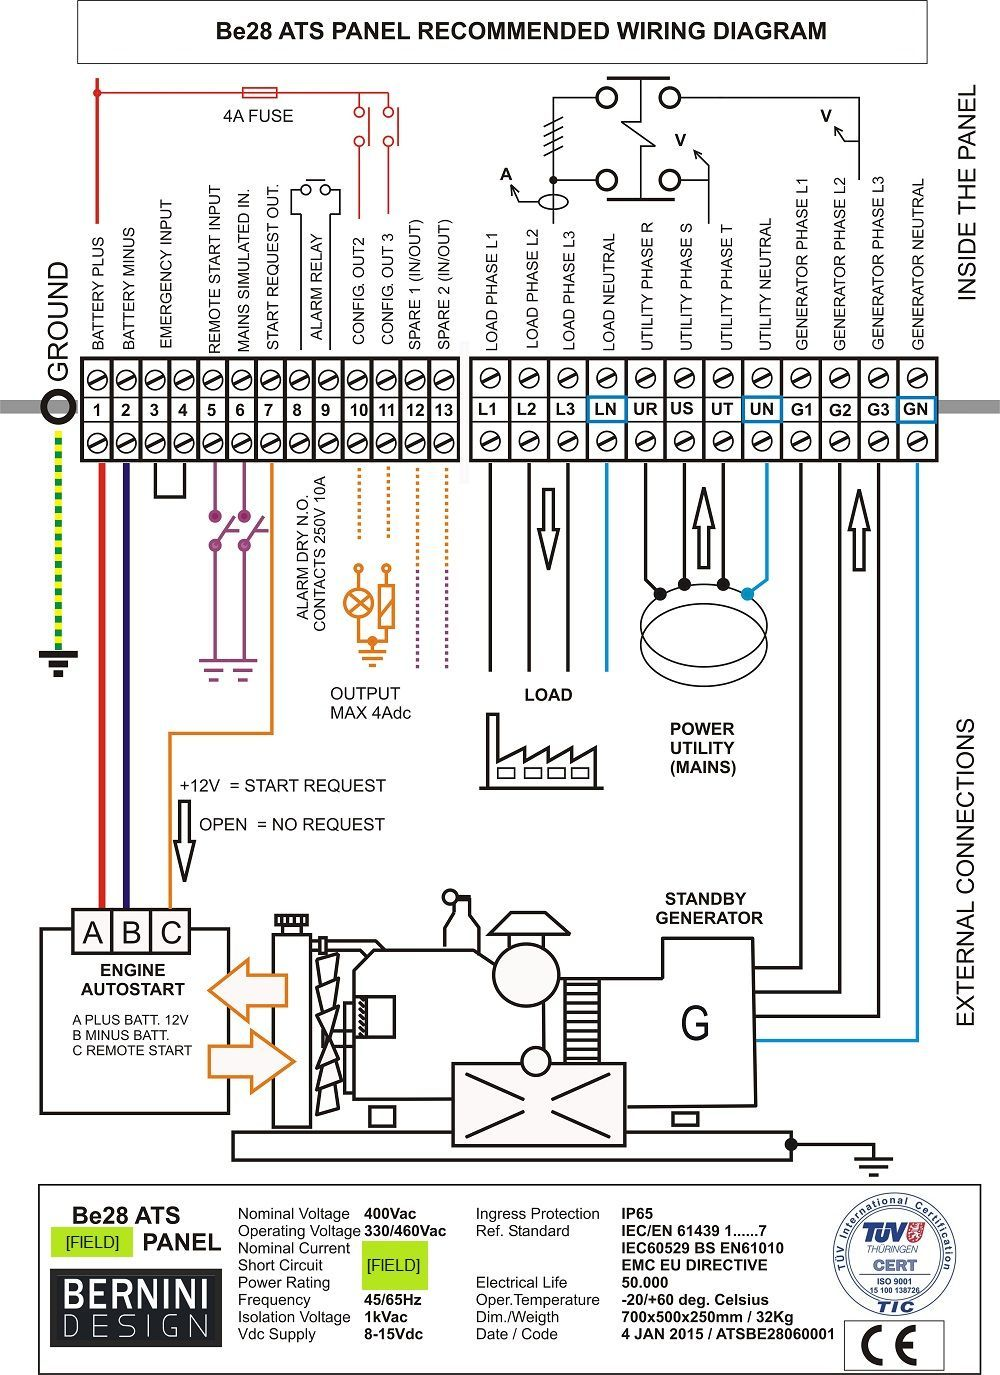 generac automatic transfer switch wiring diagram and generator extraordinary diagrams in [ 1000 x 1375 Pixel ]